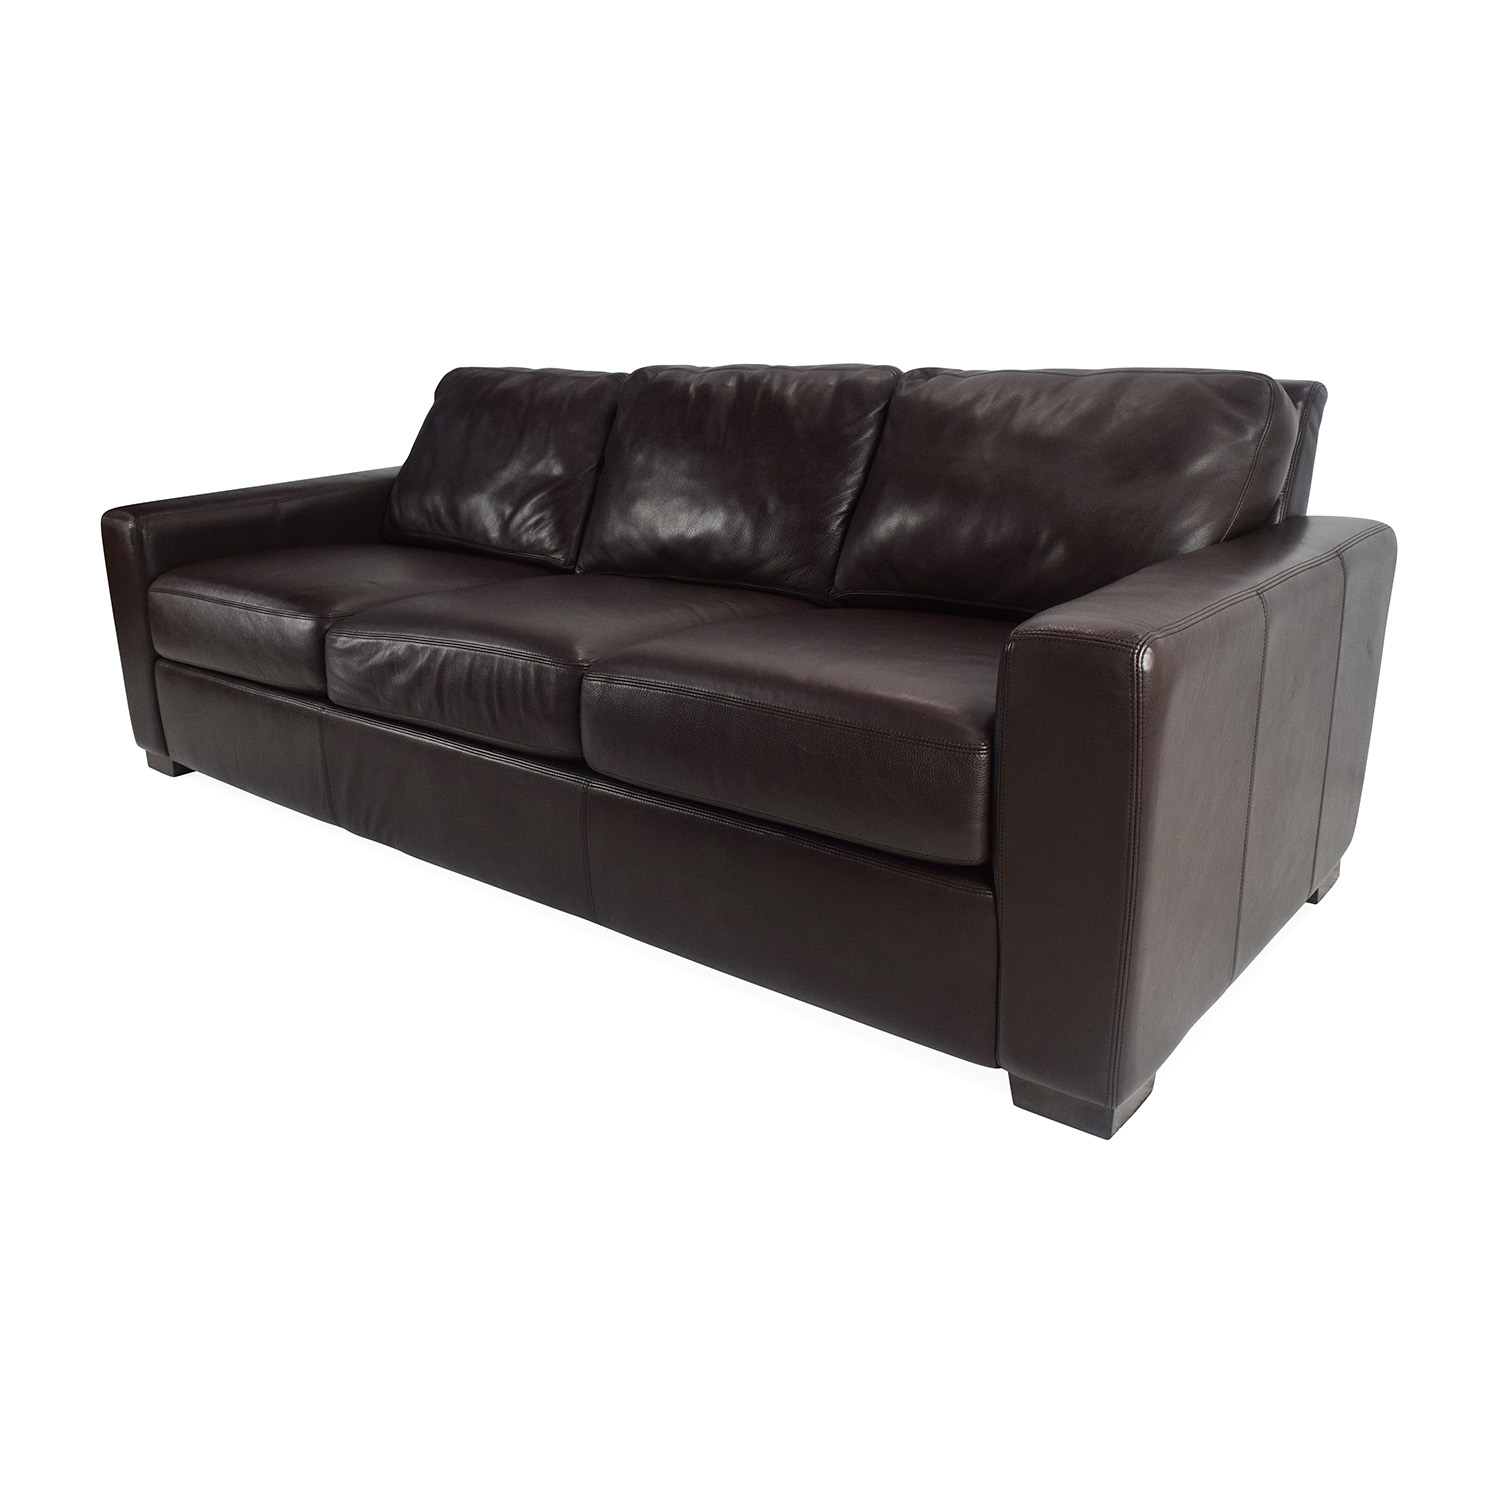 Sofa bed design within reach -  Design Within Reach Dark Leather Sofa Classic Sofas